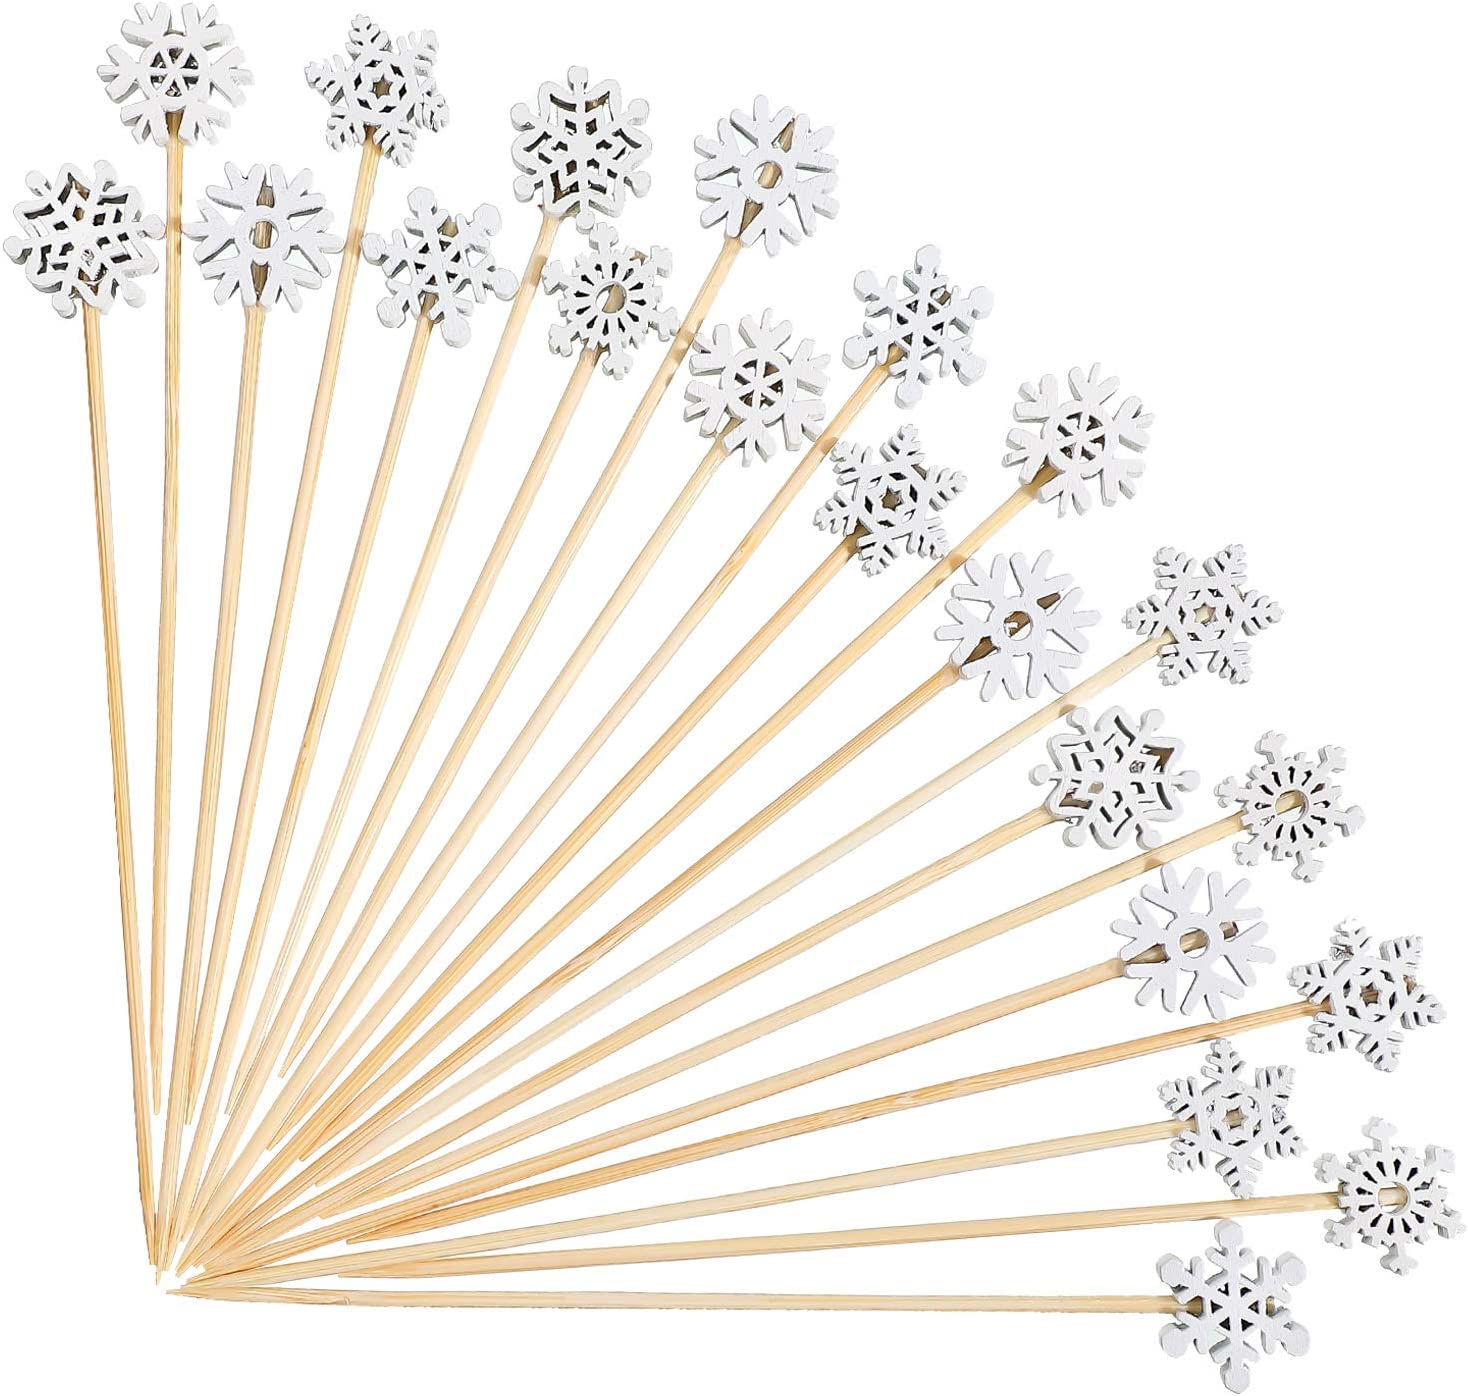 120 Pieces Snowflake Cocktail Picks Handmade Assorted Fruits Bamboo Toothpicks Snowflake Christmas Fruit Picks for Drink Fruit Dessert Food Appetizers Decoration Frozen Winter Theme Christmas Party